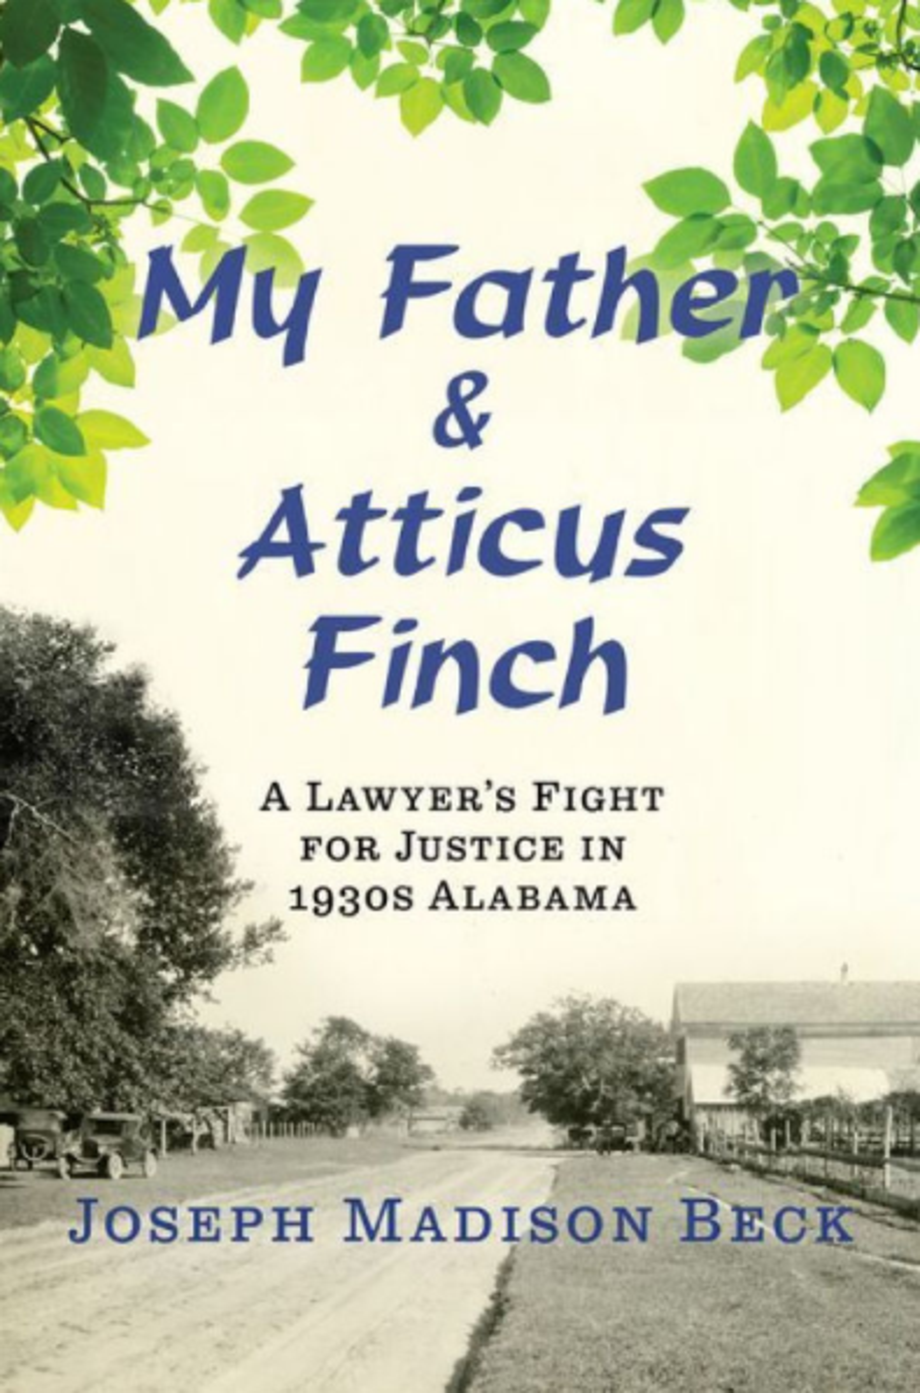 My Father and Atticus Finch: A Lawyer's Fight for Justice in 1930s Alabama, Joseph Madison Beck